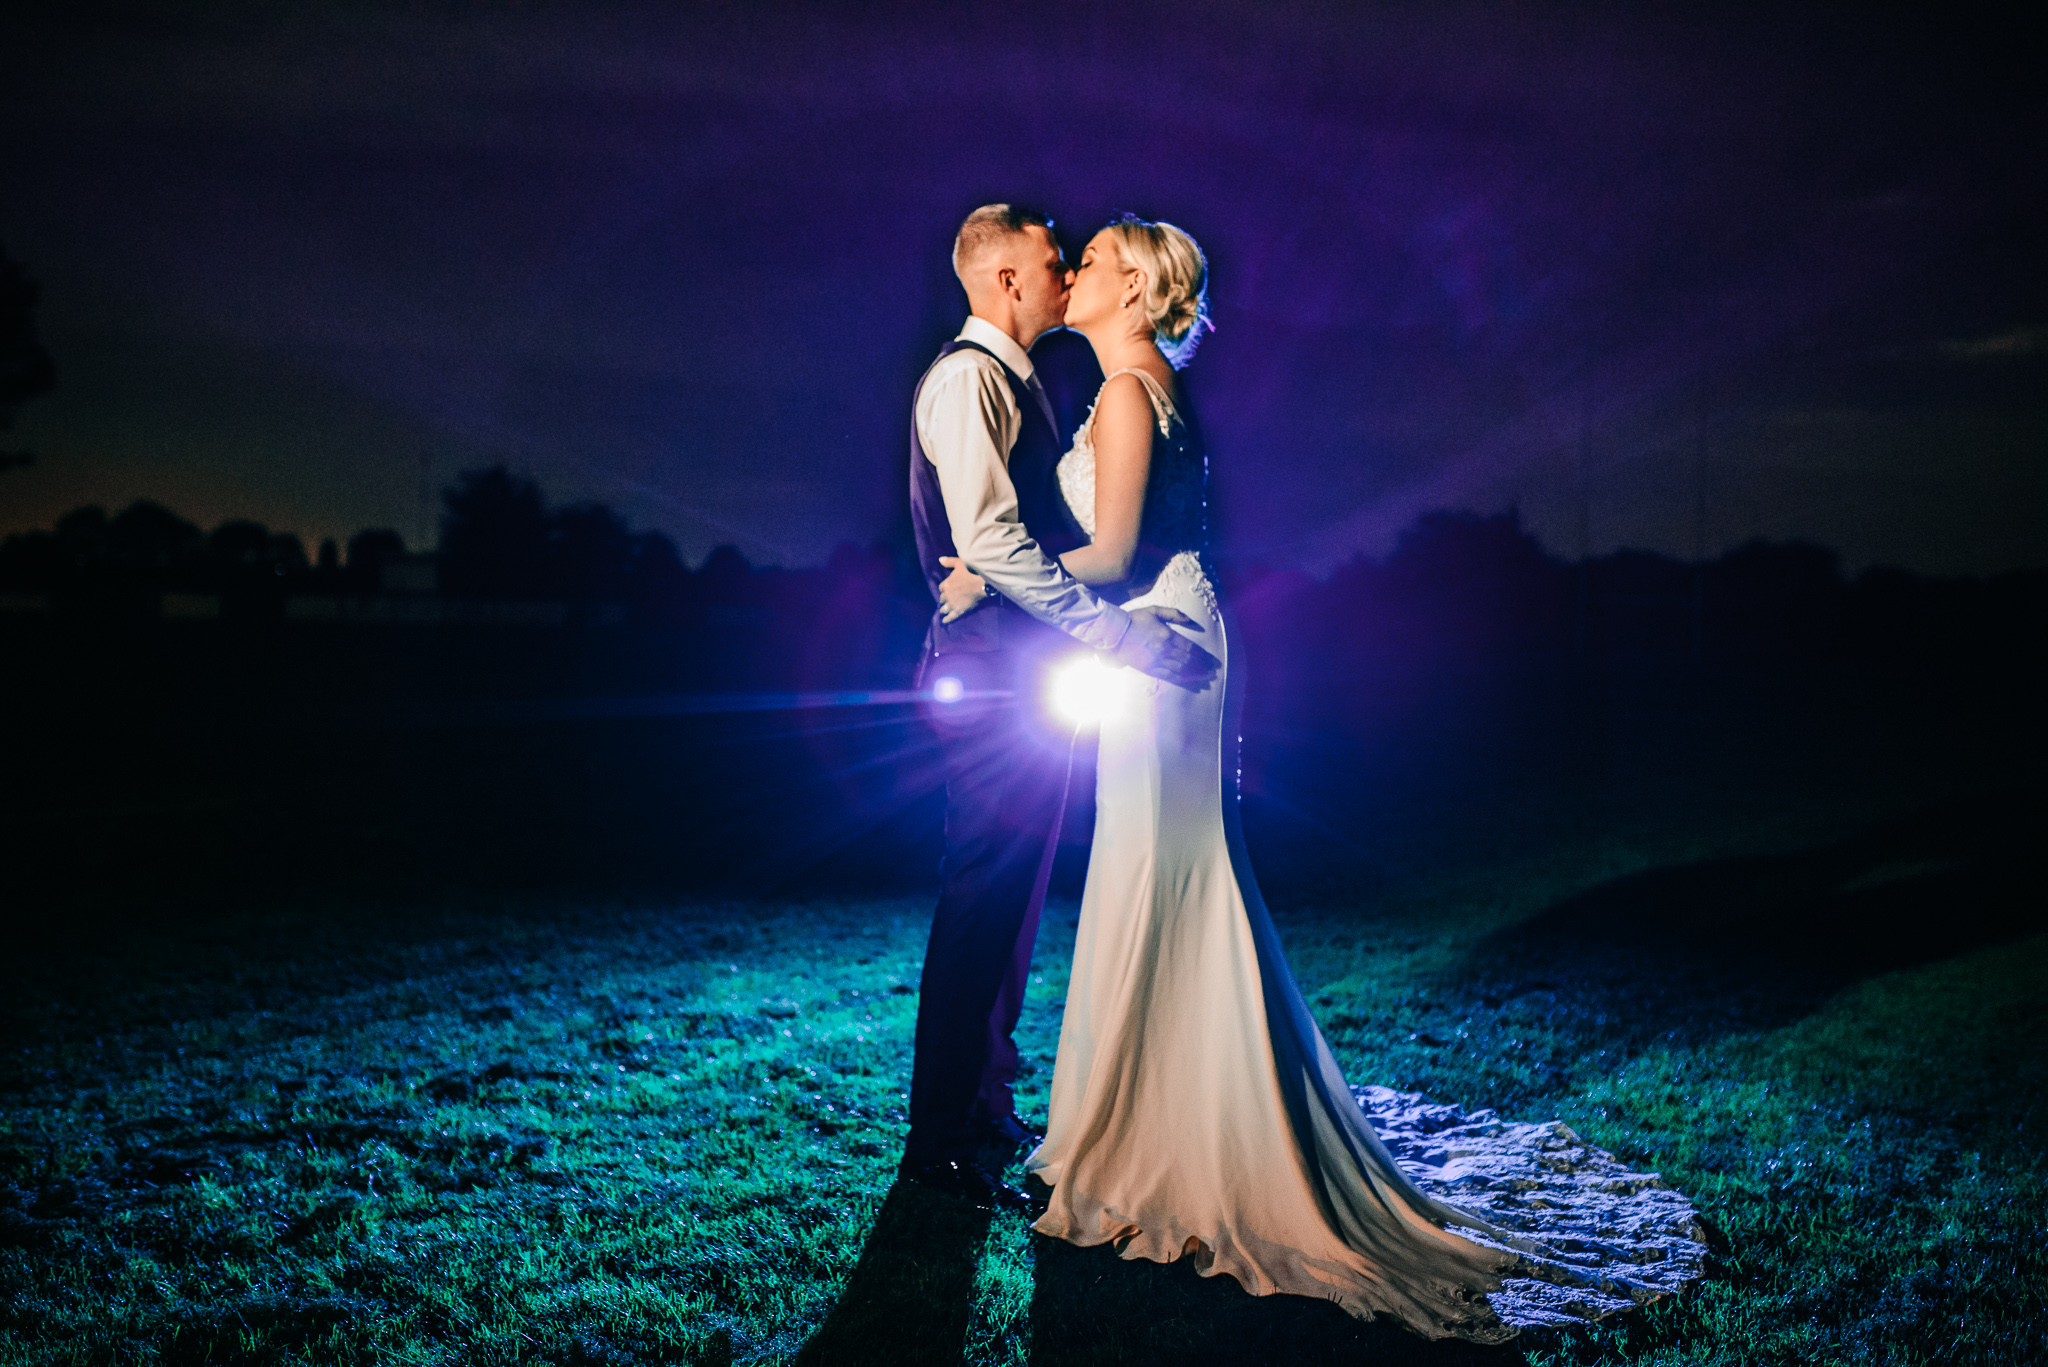 """""""Fill my heart with song and let me sing for ever more"""" - Coral & James - St. Mark's, Dunham Massey"""